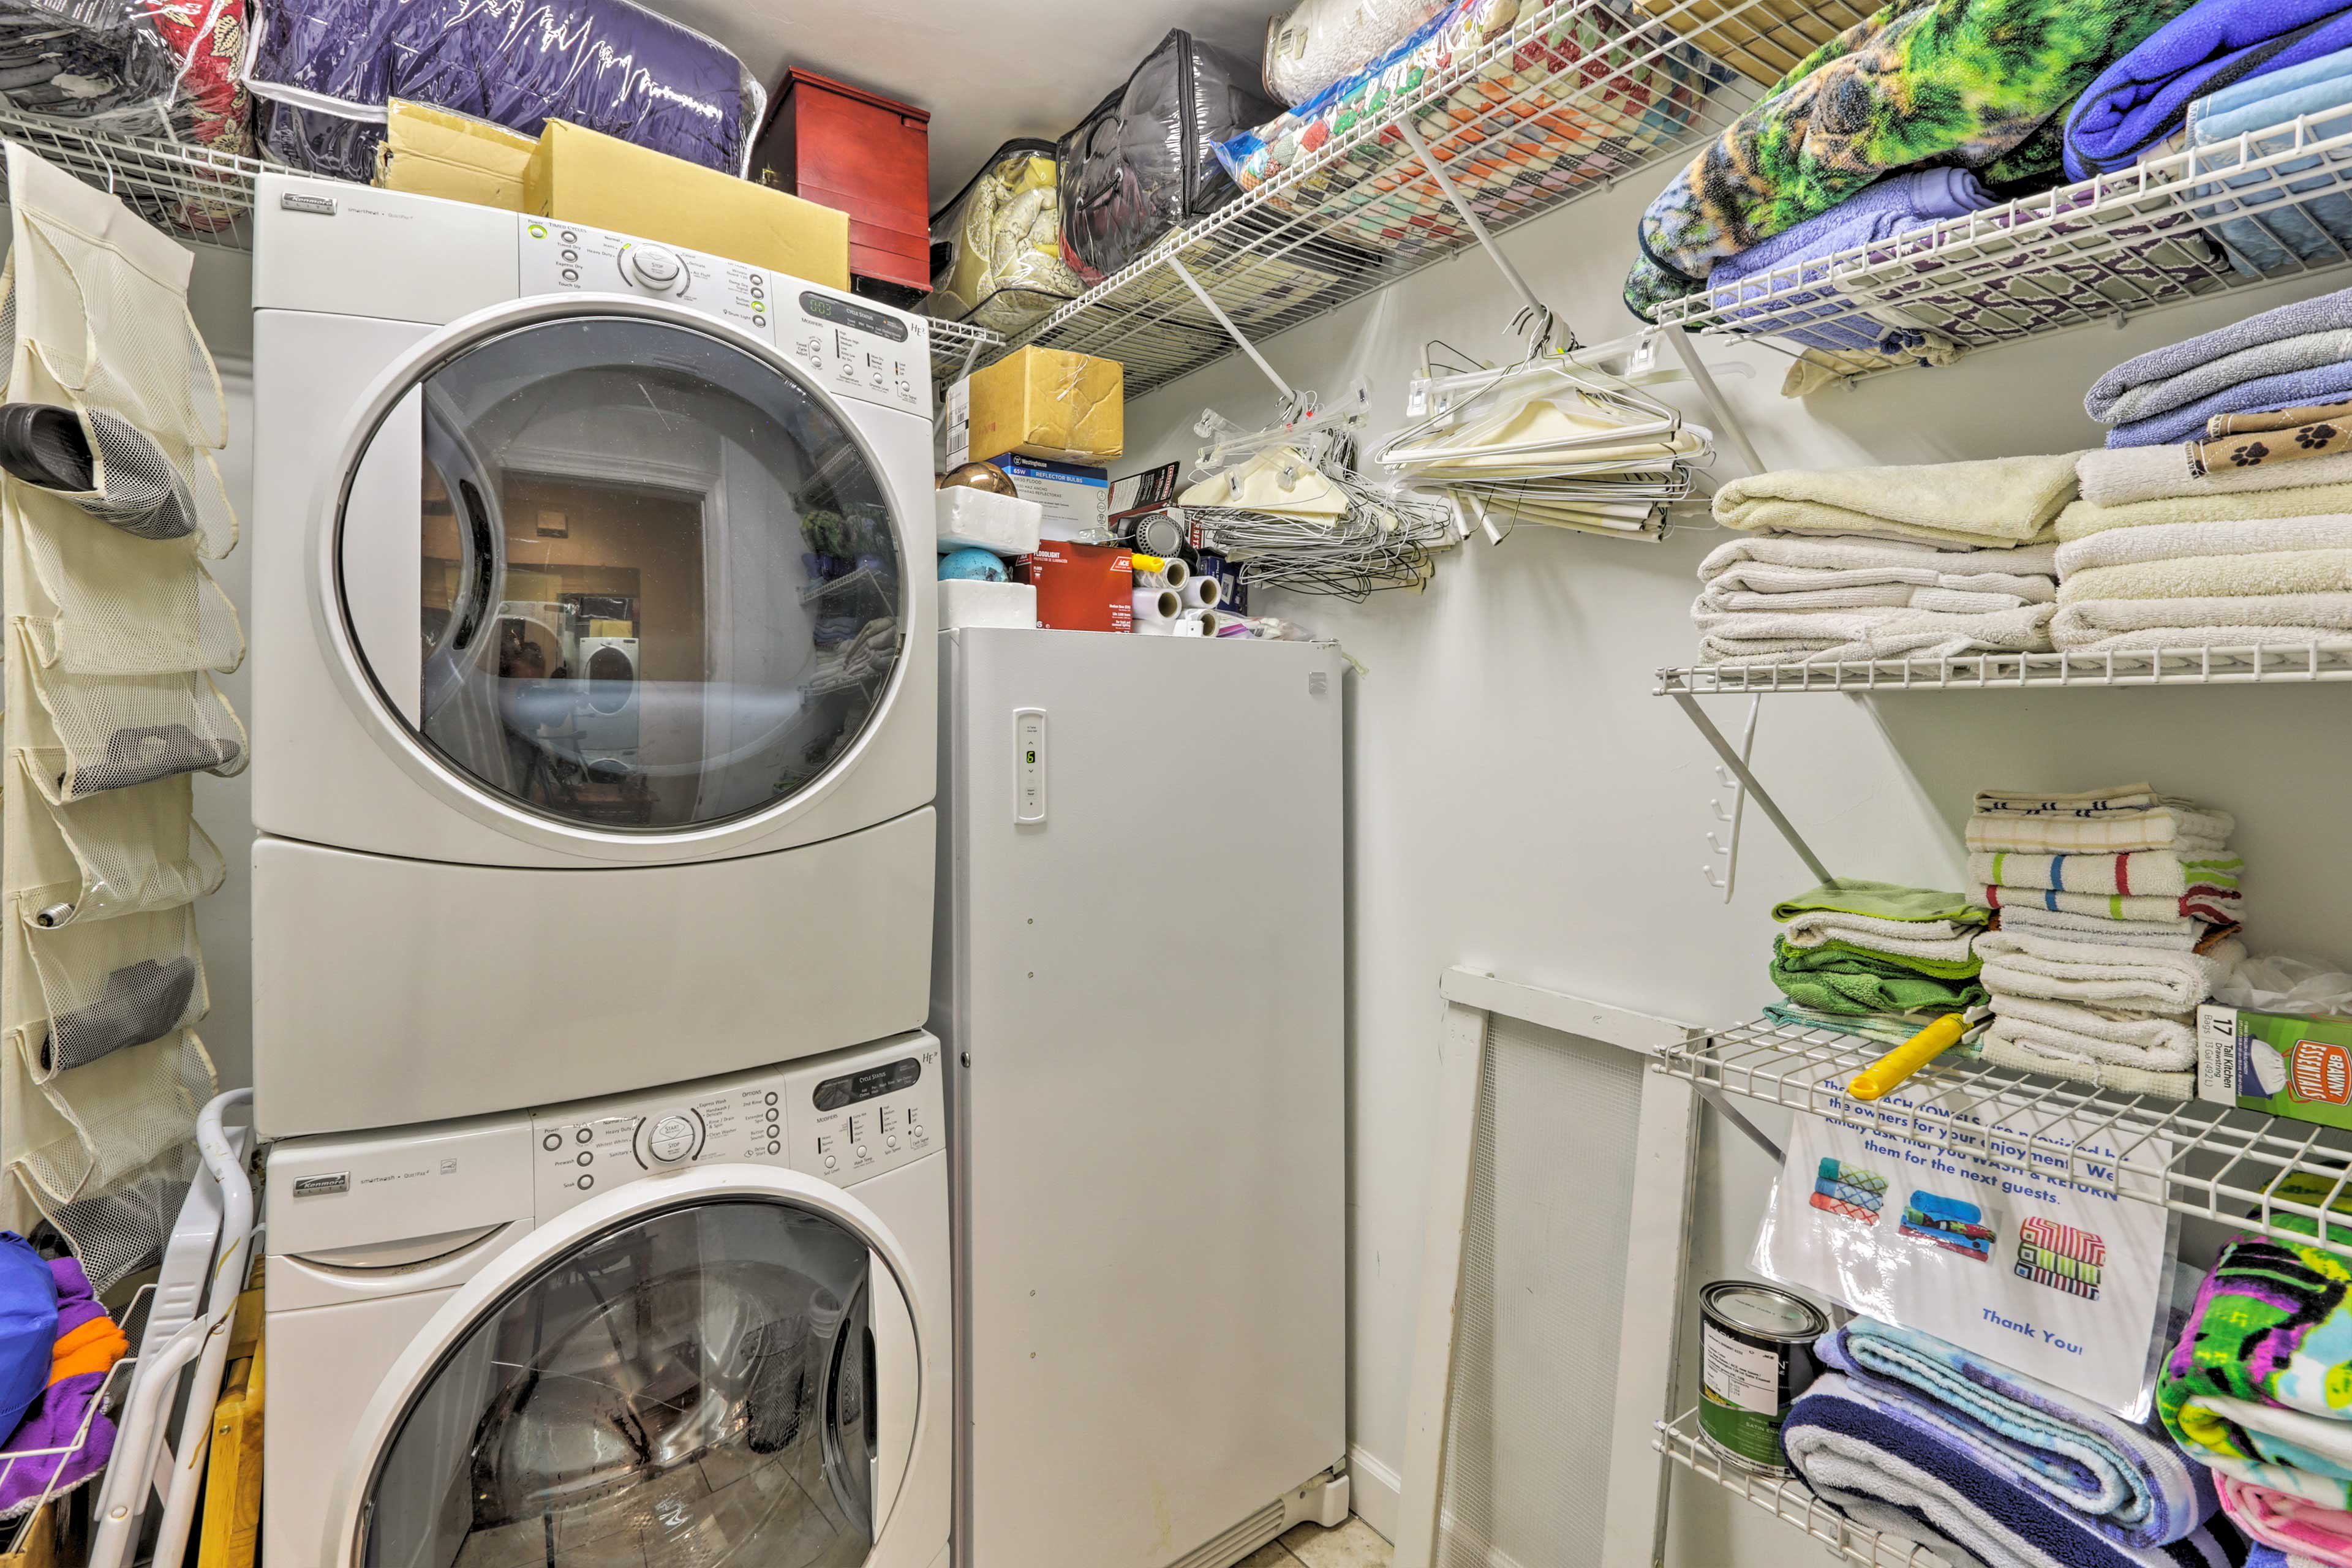 Enjoy access to the washer and dryer.